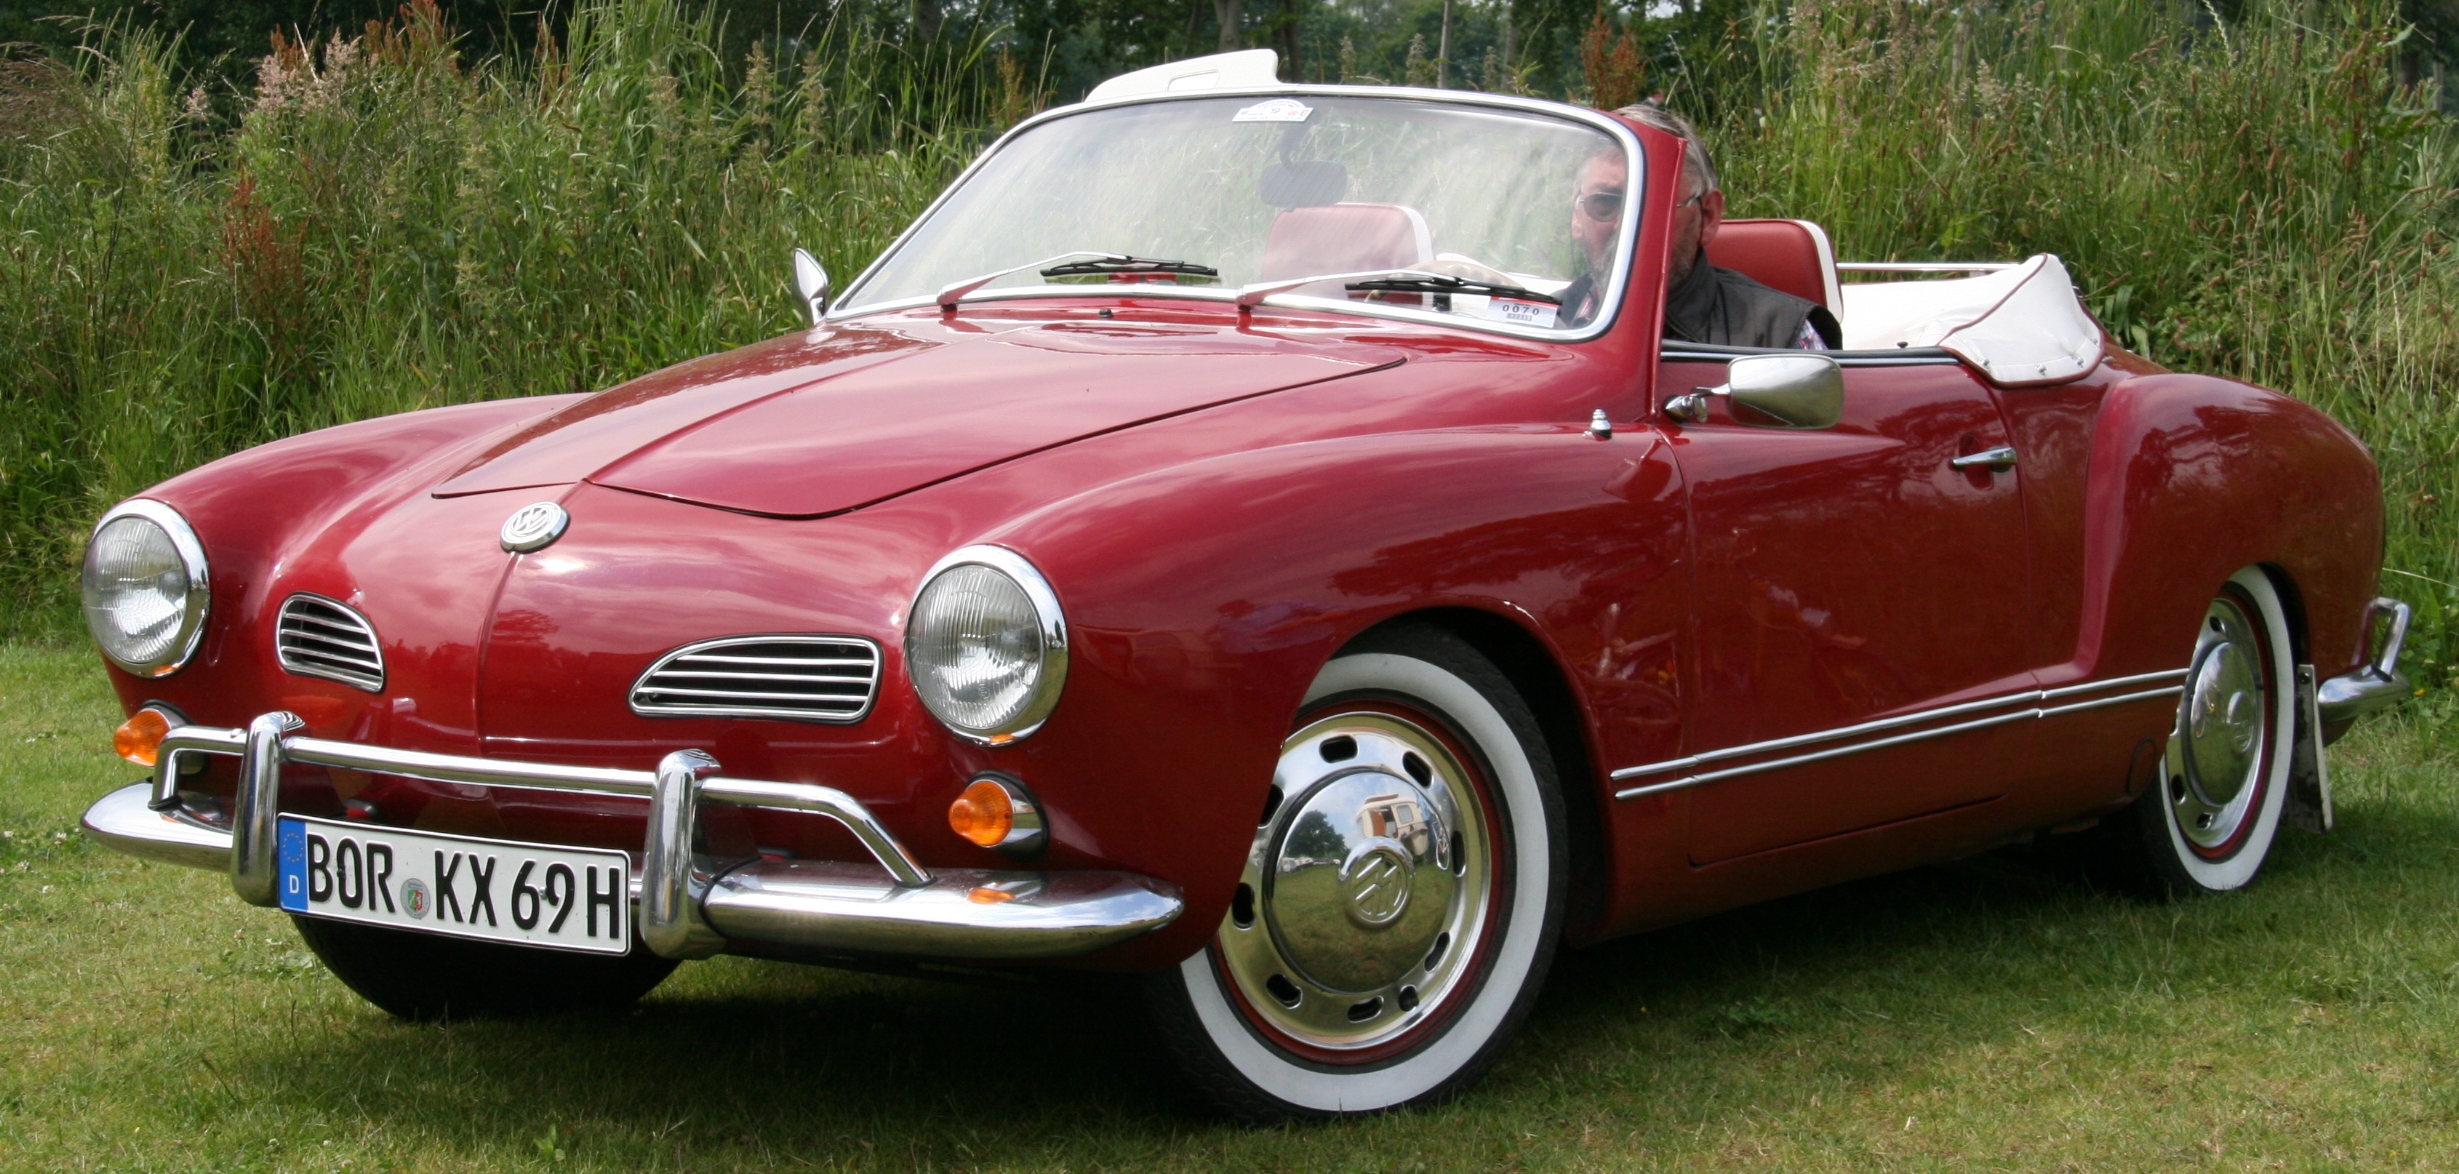 volkswagen karmann ghia cabrio picture 3 reviews news specs buy car. Black Bedroom Furniture Sets. Home Design Ideas